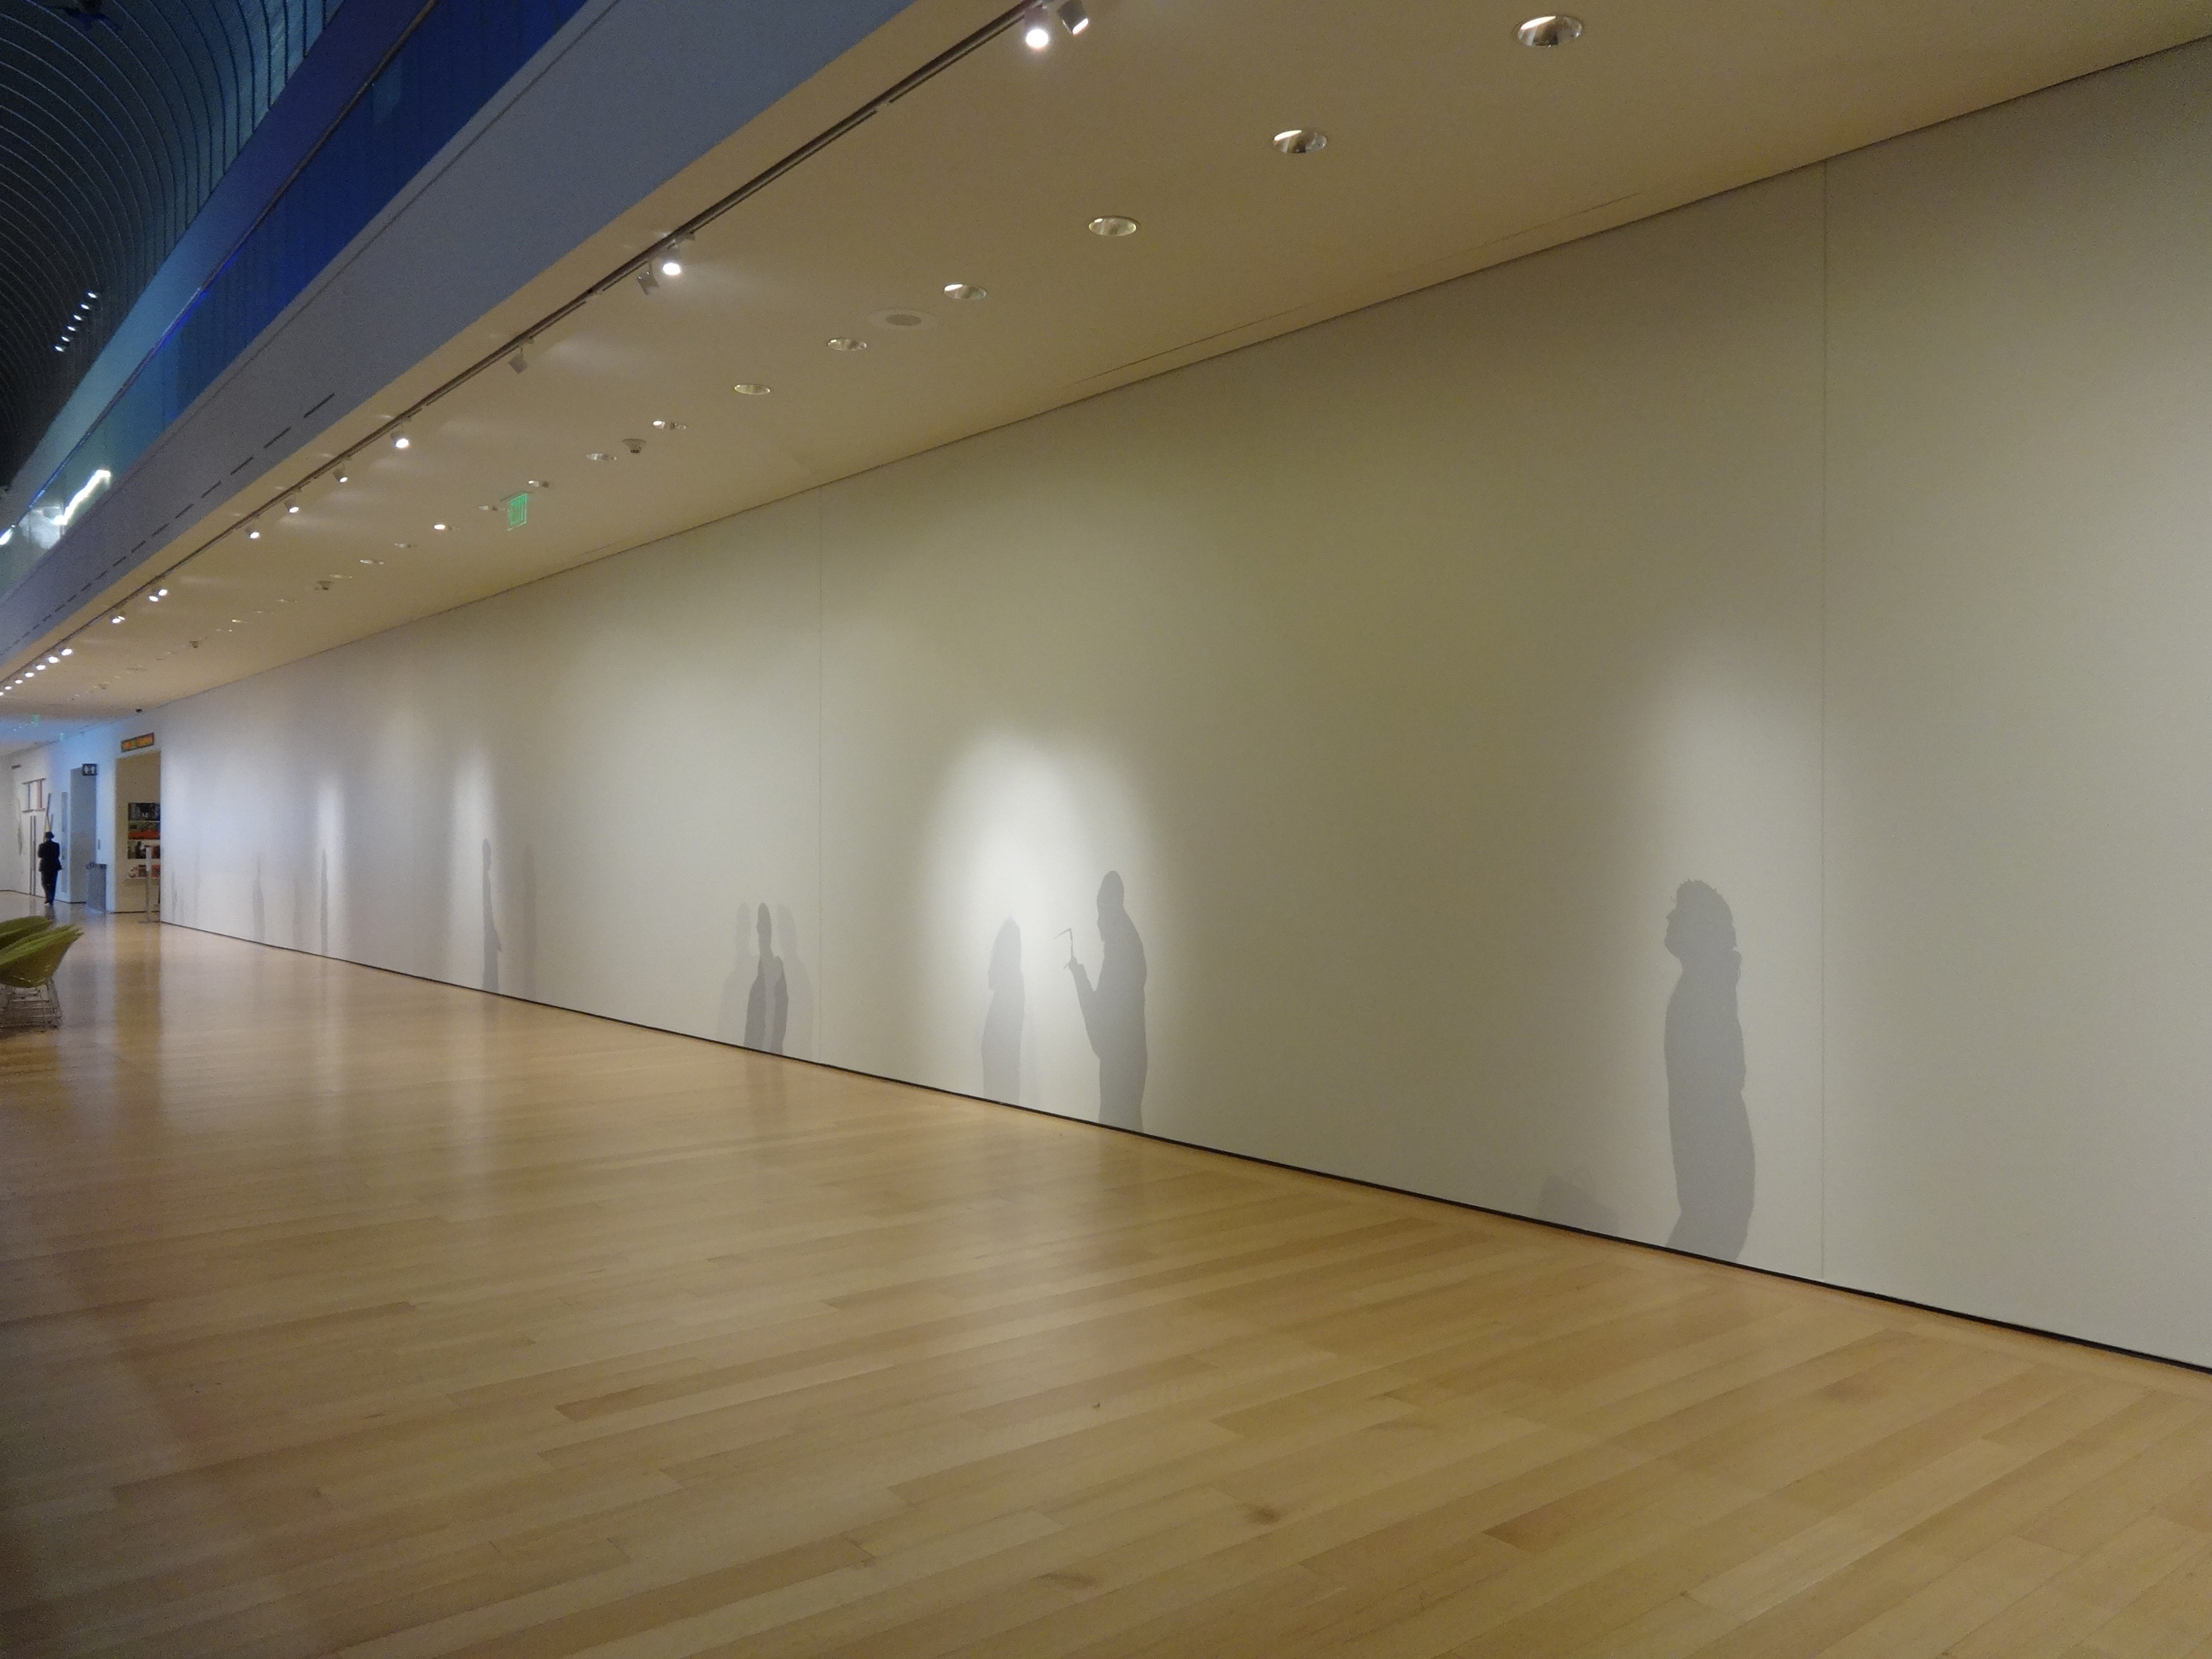 Untitled shadows mfa 1969 2014 full